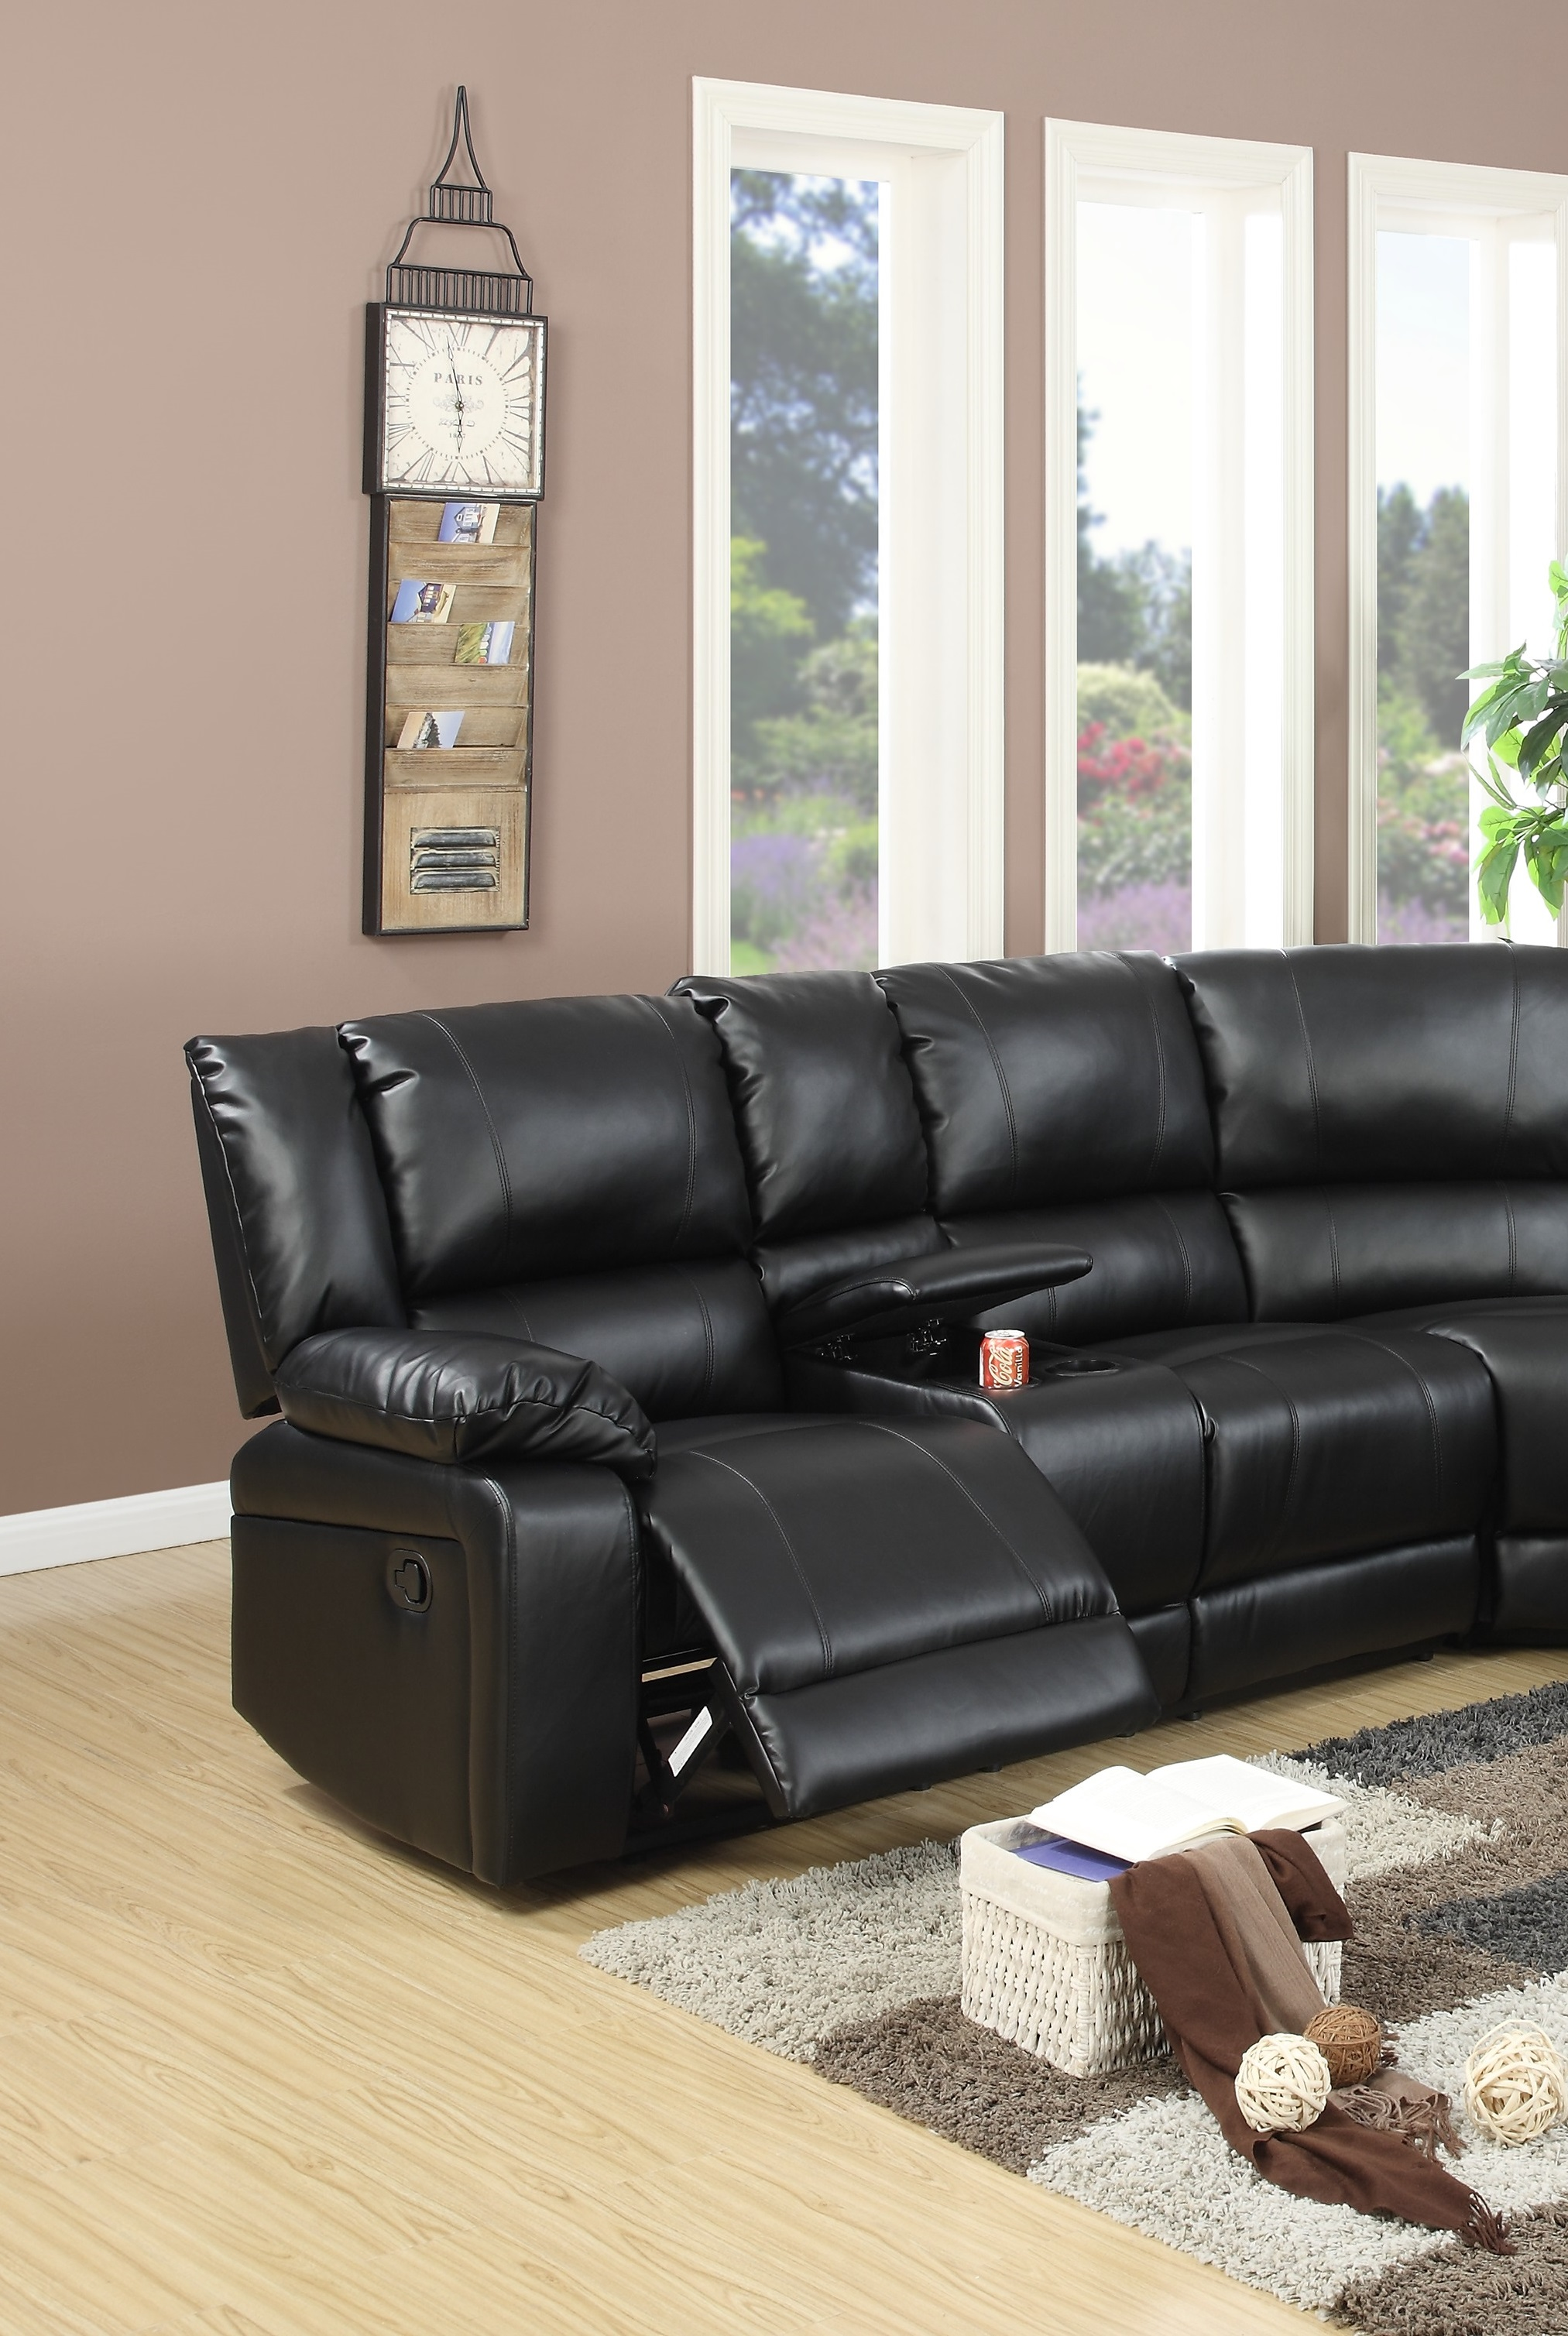 noci wayfair design furniture sectional pdx nocidesign leather reclining